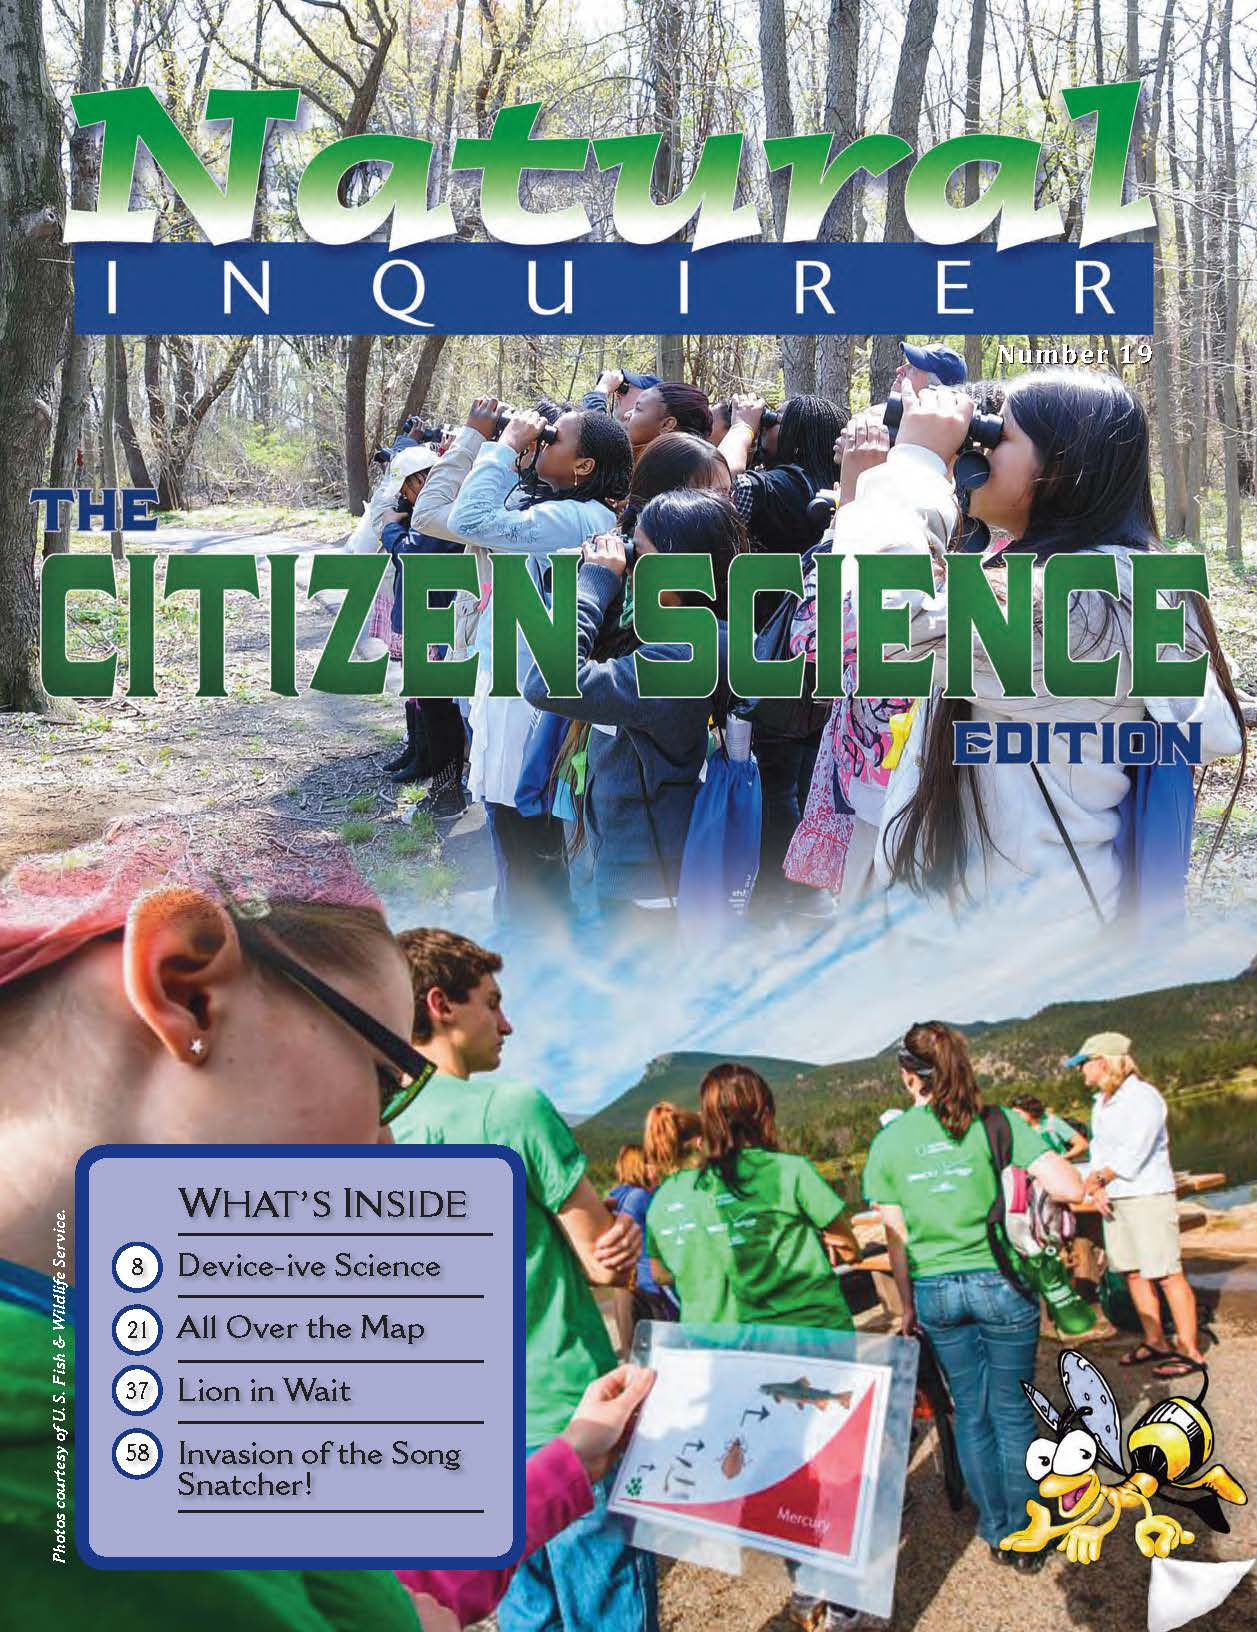 Cover image from Natural Inquirer Citizen Science edition.